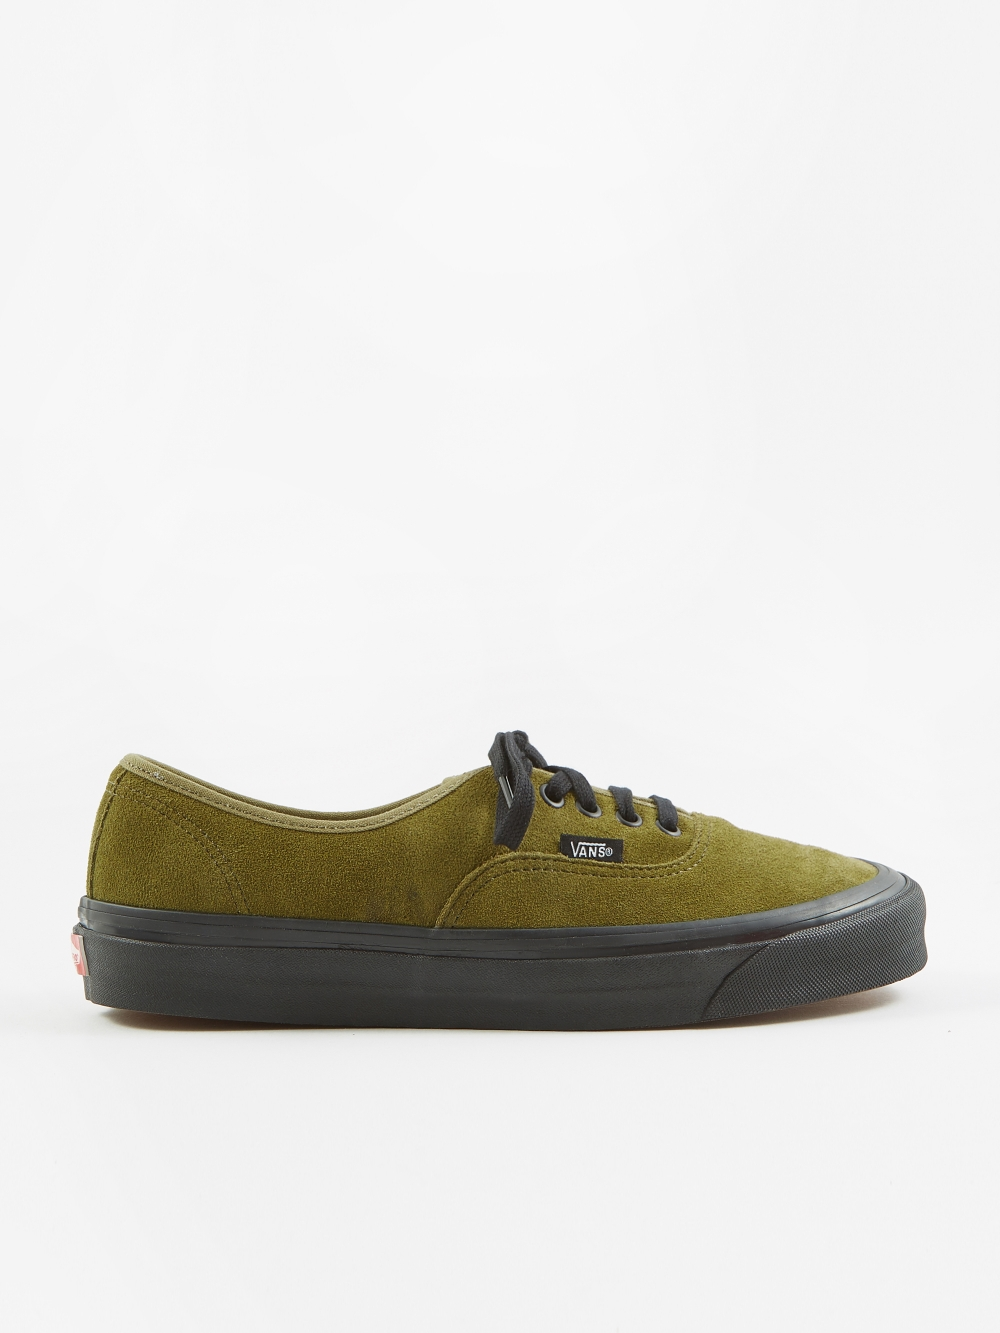 8b3105e0cd Vans Authentic 44 DX - (Anaheim Factory) OG Olive Suede (Image 1